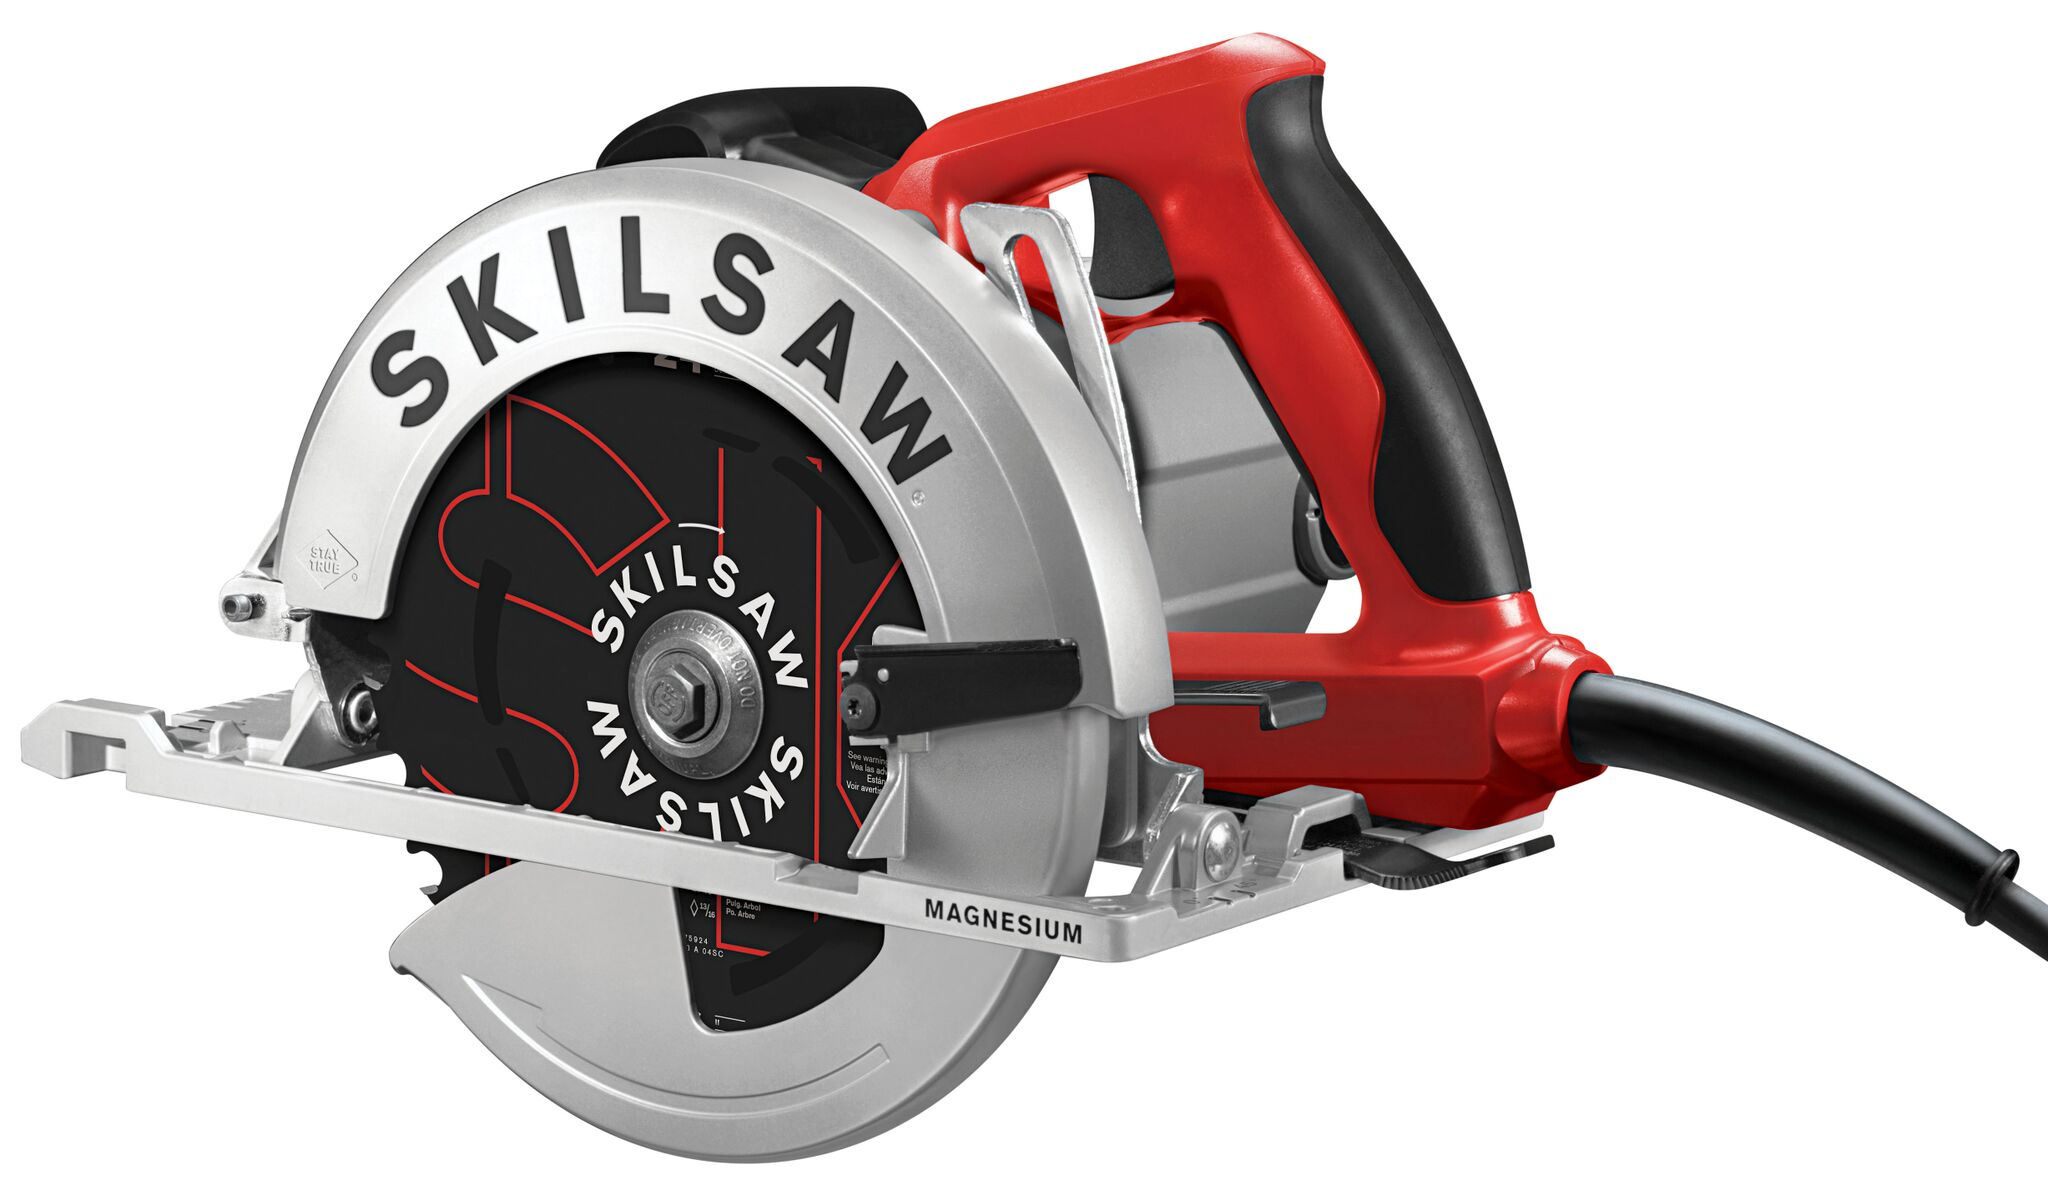 New skilsaw southpaw left blade 7 14 sidewinder circular saw skilsaw just announced the new skilsaw southpaw a left blade 7 14 sidewinder circular saw keyboard keysfo Image collections